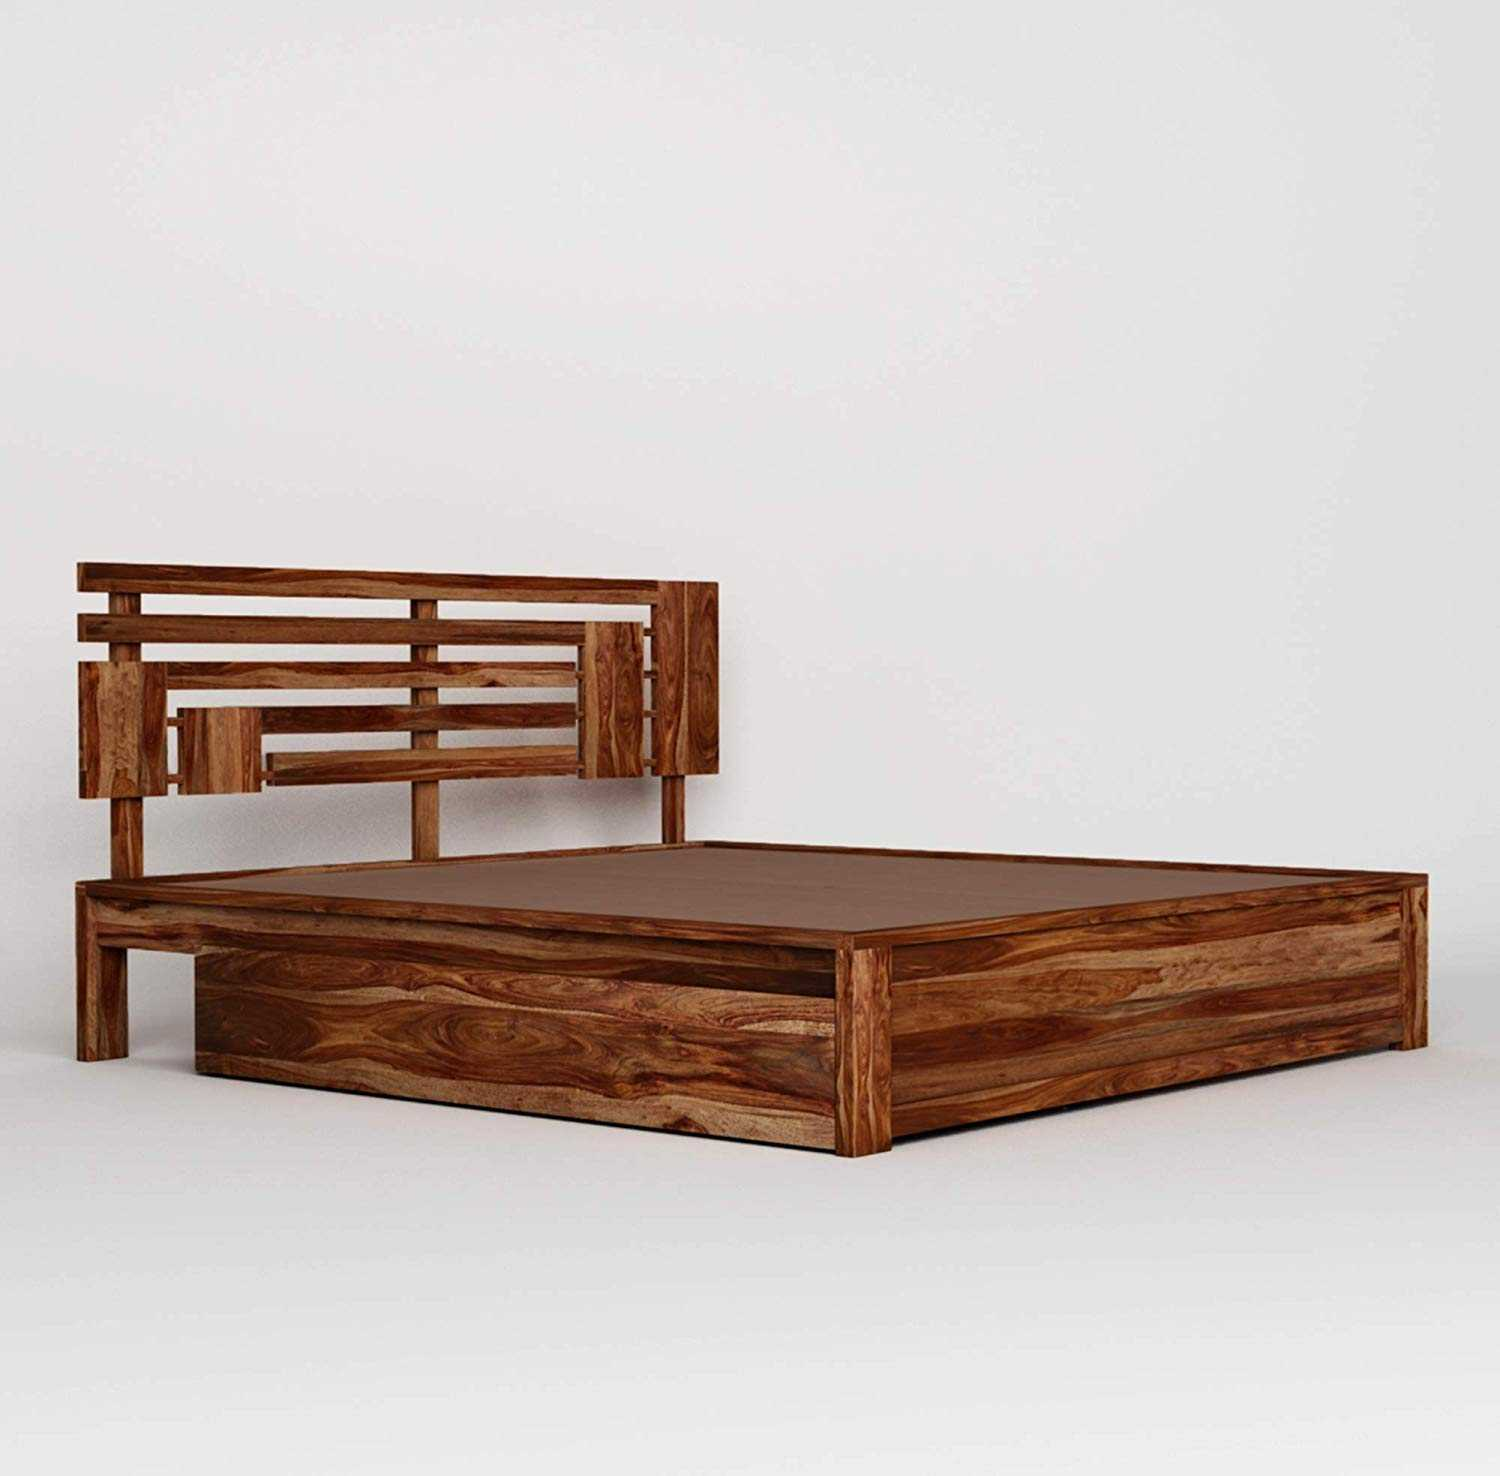 Aloonti King Size Bed with Drawer Storage Cabinet for Bedroom Home (Teak Finish - Matured Wooden Furniture_King)